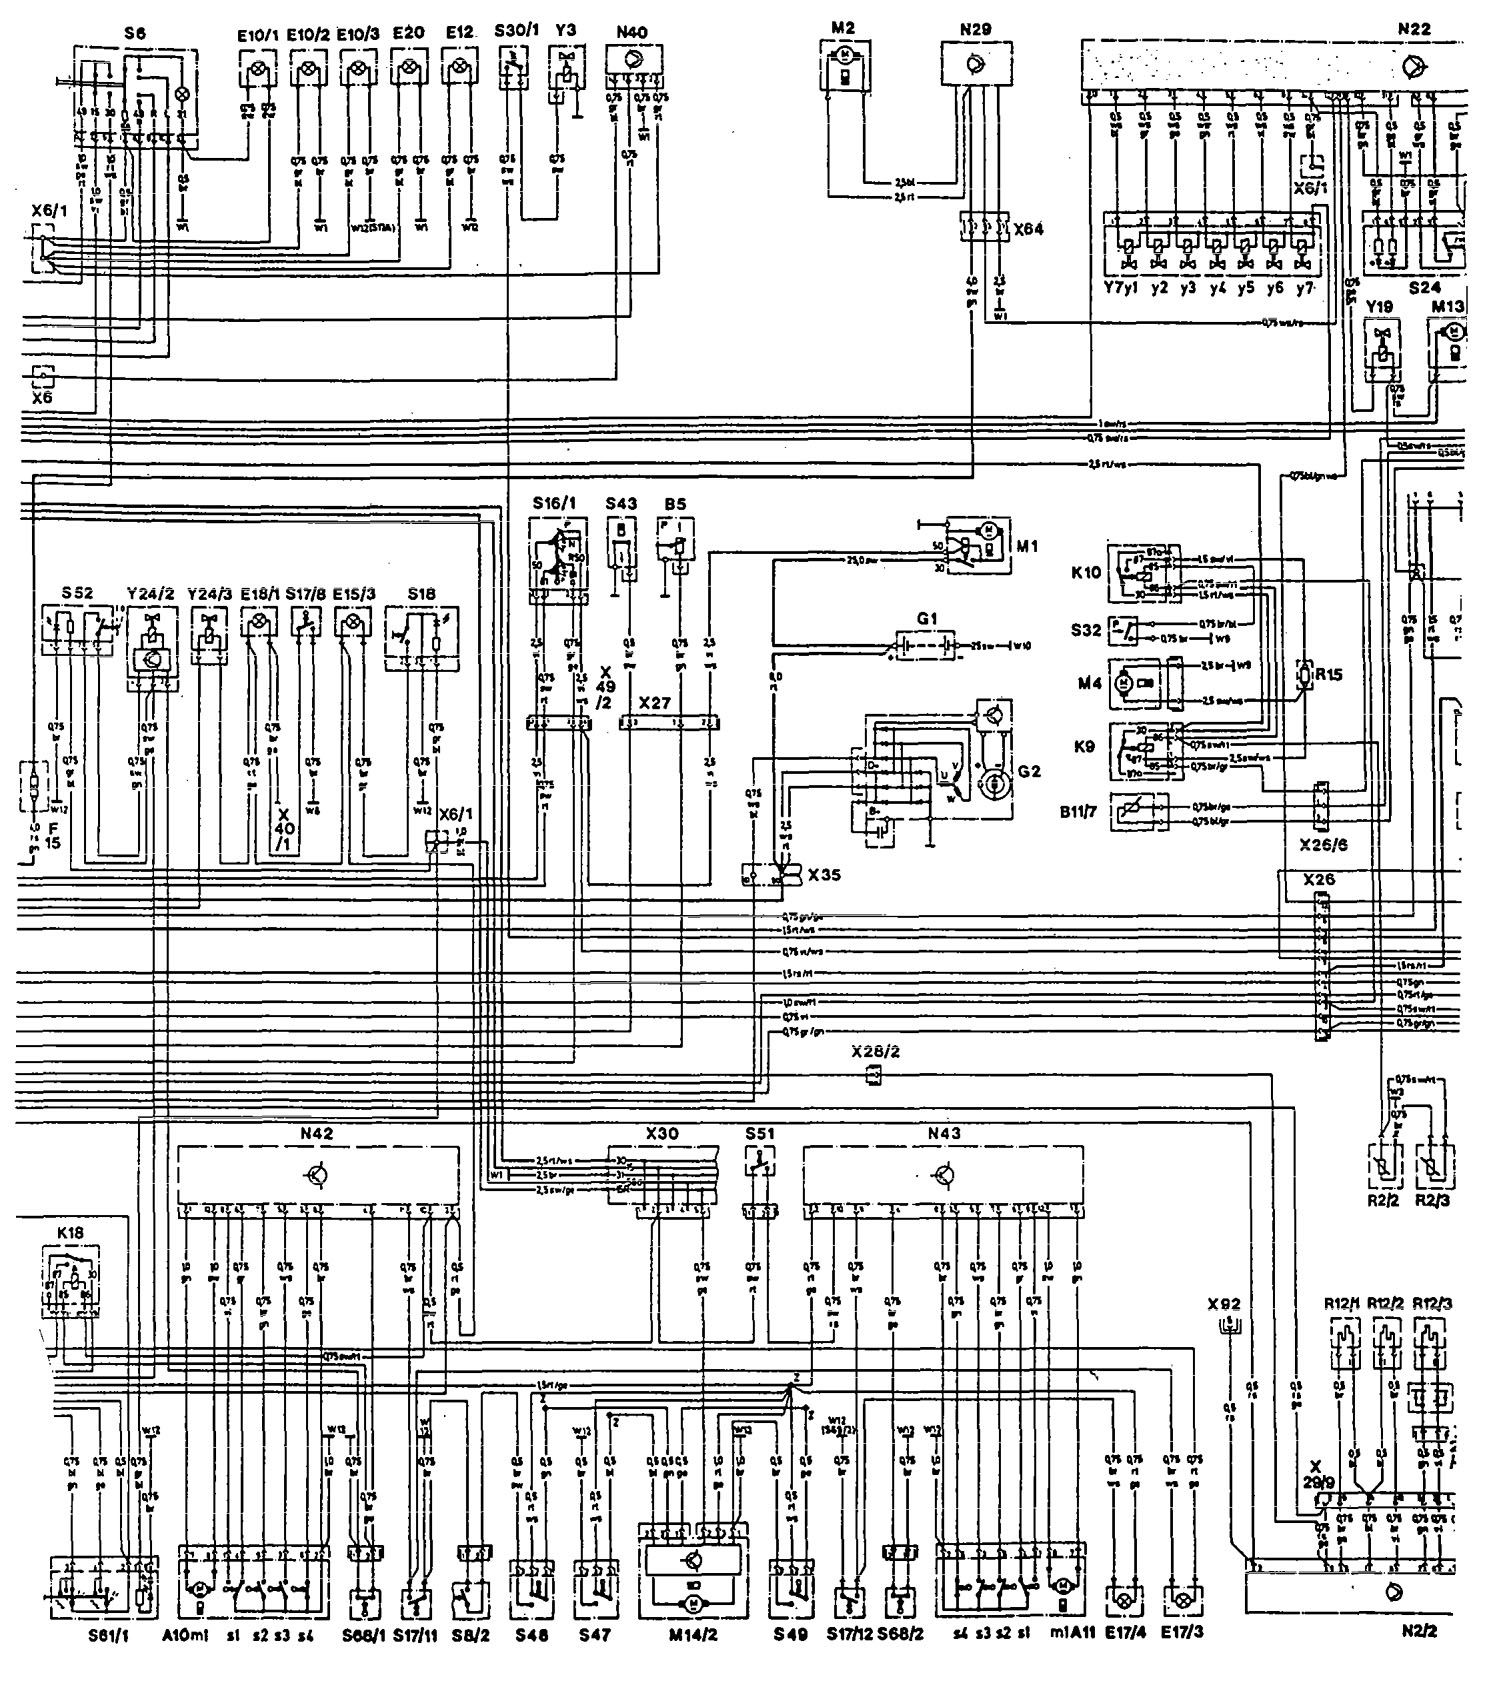 Mercedes Benz 300 Coupe Wiring Diagram from www.carknowledge.info